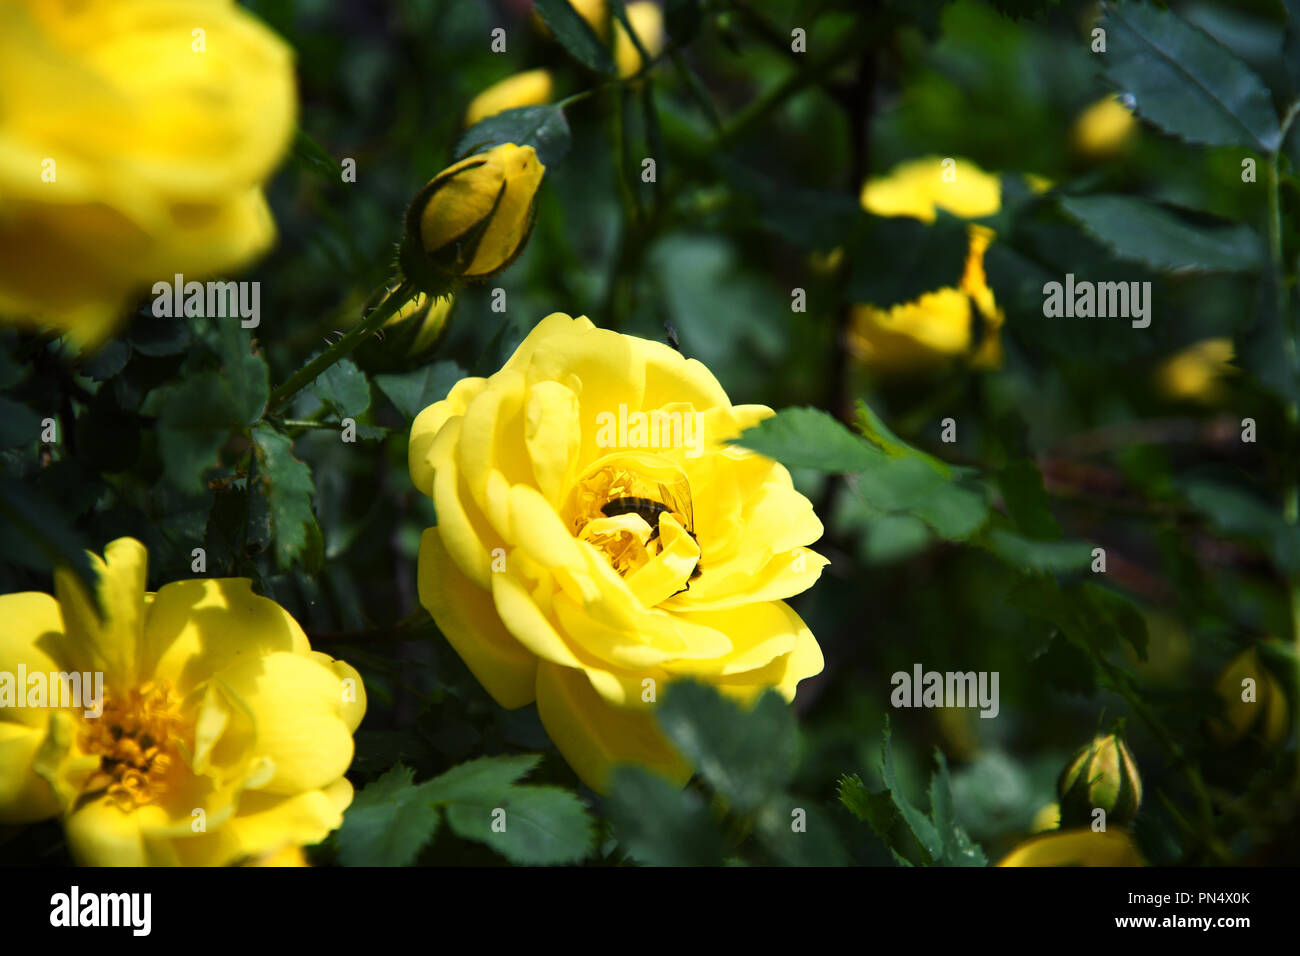 Honey bee gathering nectar from a yellow rose Stock Photo